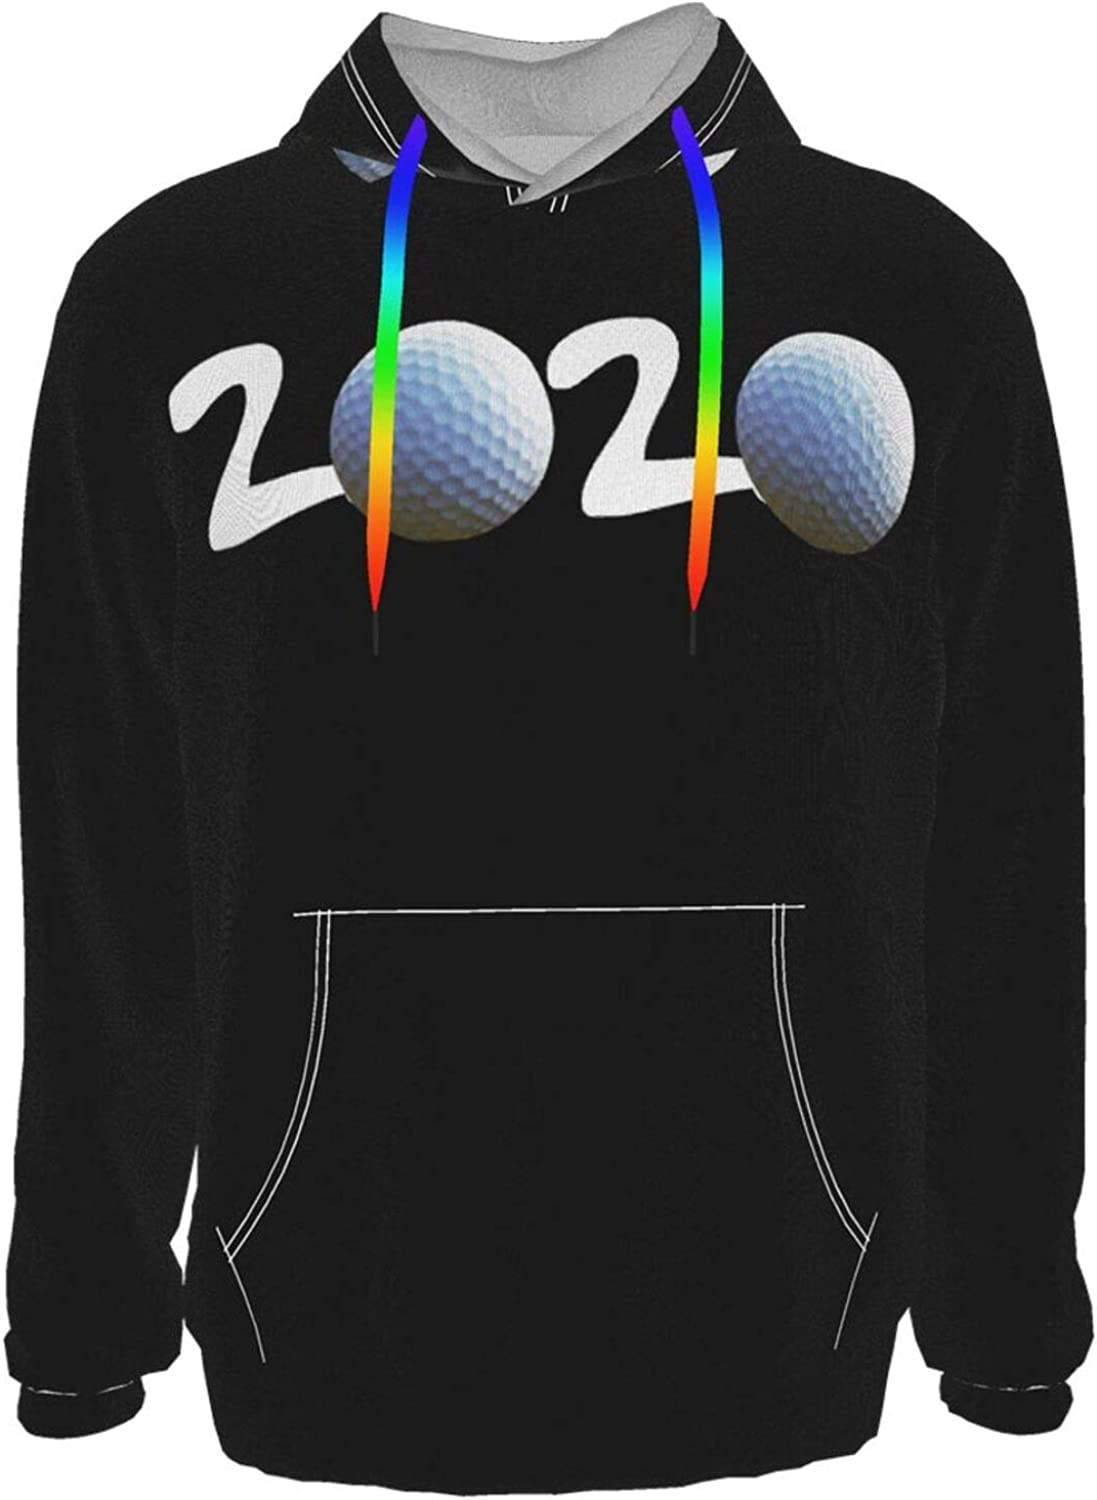 2020 Baseball Men Women 3d Pull Sweatshirt Hooded OFFicial mail order Free Shipping Cheap Bargain Gift Printed Casual